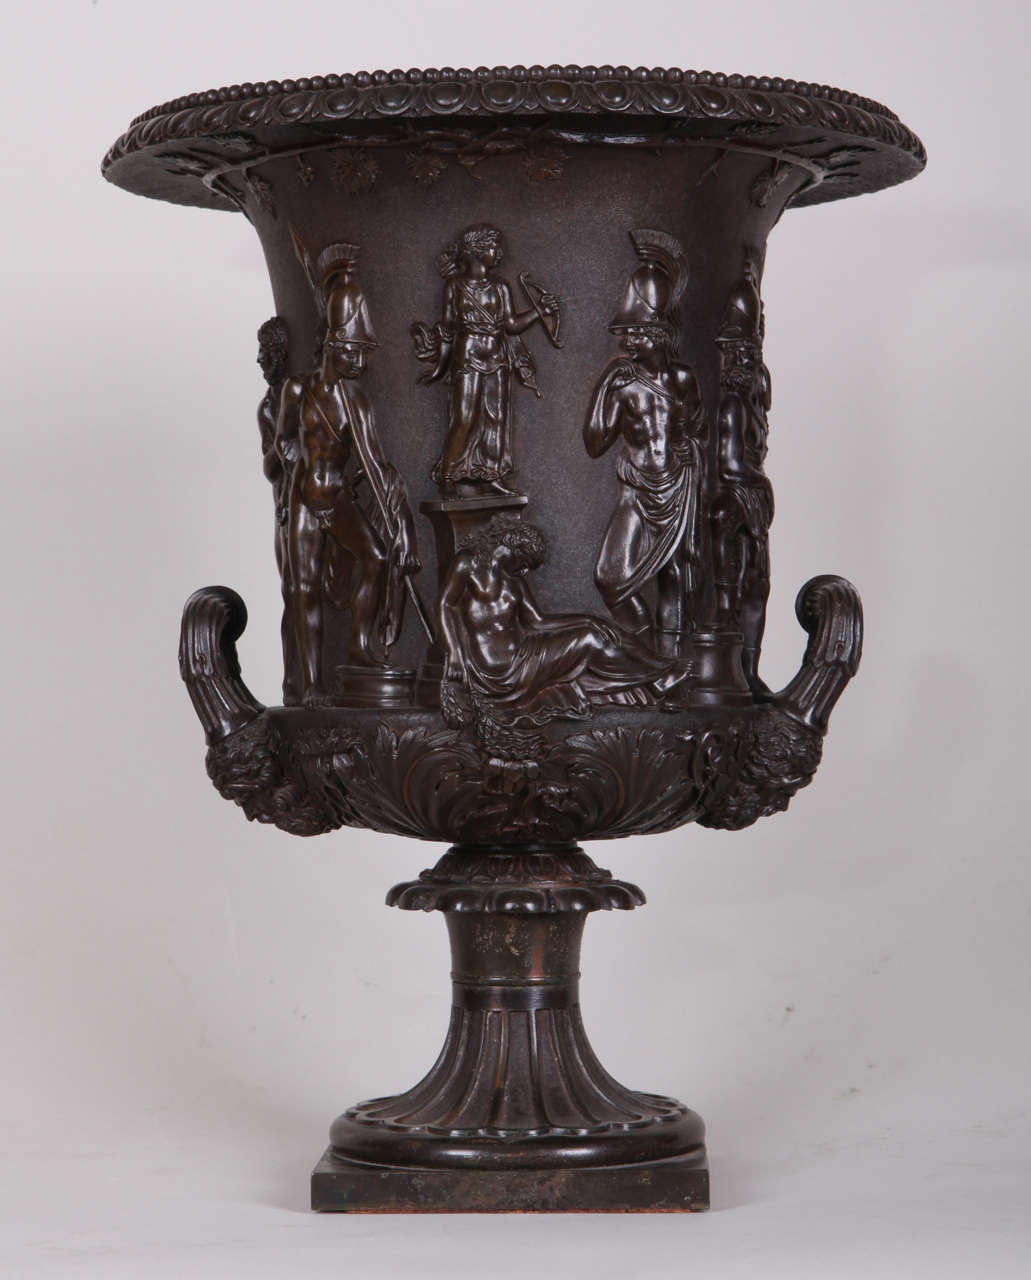 19th century italian grand tour bronze vase after the antique by b boschetti for sale at 1stdibs. Black Bedroom Furniture Sets. Home Design Ideas